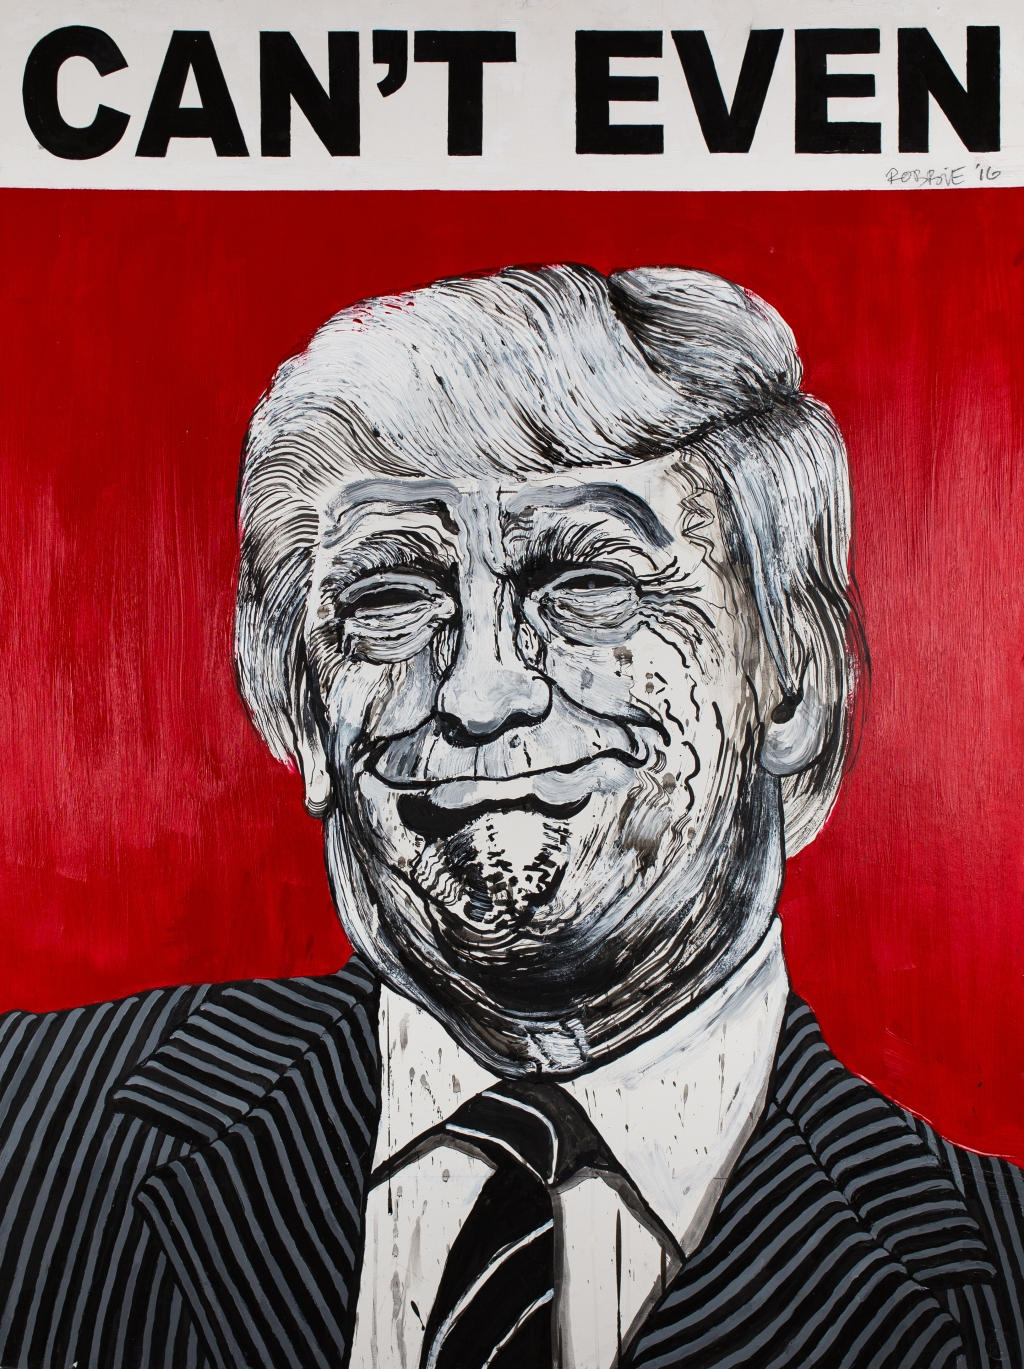 74-year-old illustrator and guerilla street artist Robbie Conal spent more than three decades satirizing conservative lawmakers before he moved from Los Angeles to Los Osos, an idyllic beach community on California's Central Coast, in 2014. Conal would've been perfectly happy if he never drew another politician again. And then Donald Trump became president.